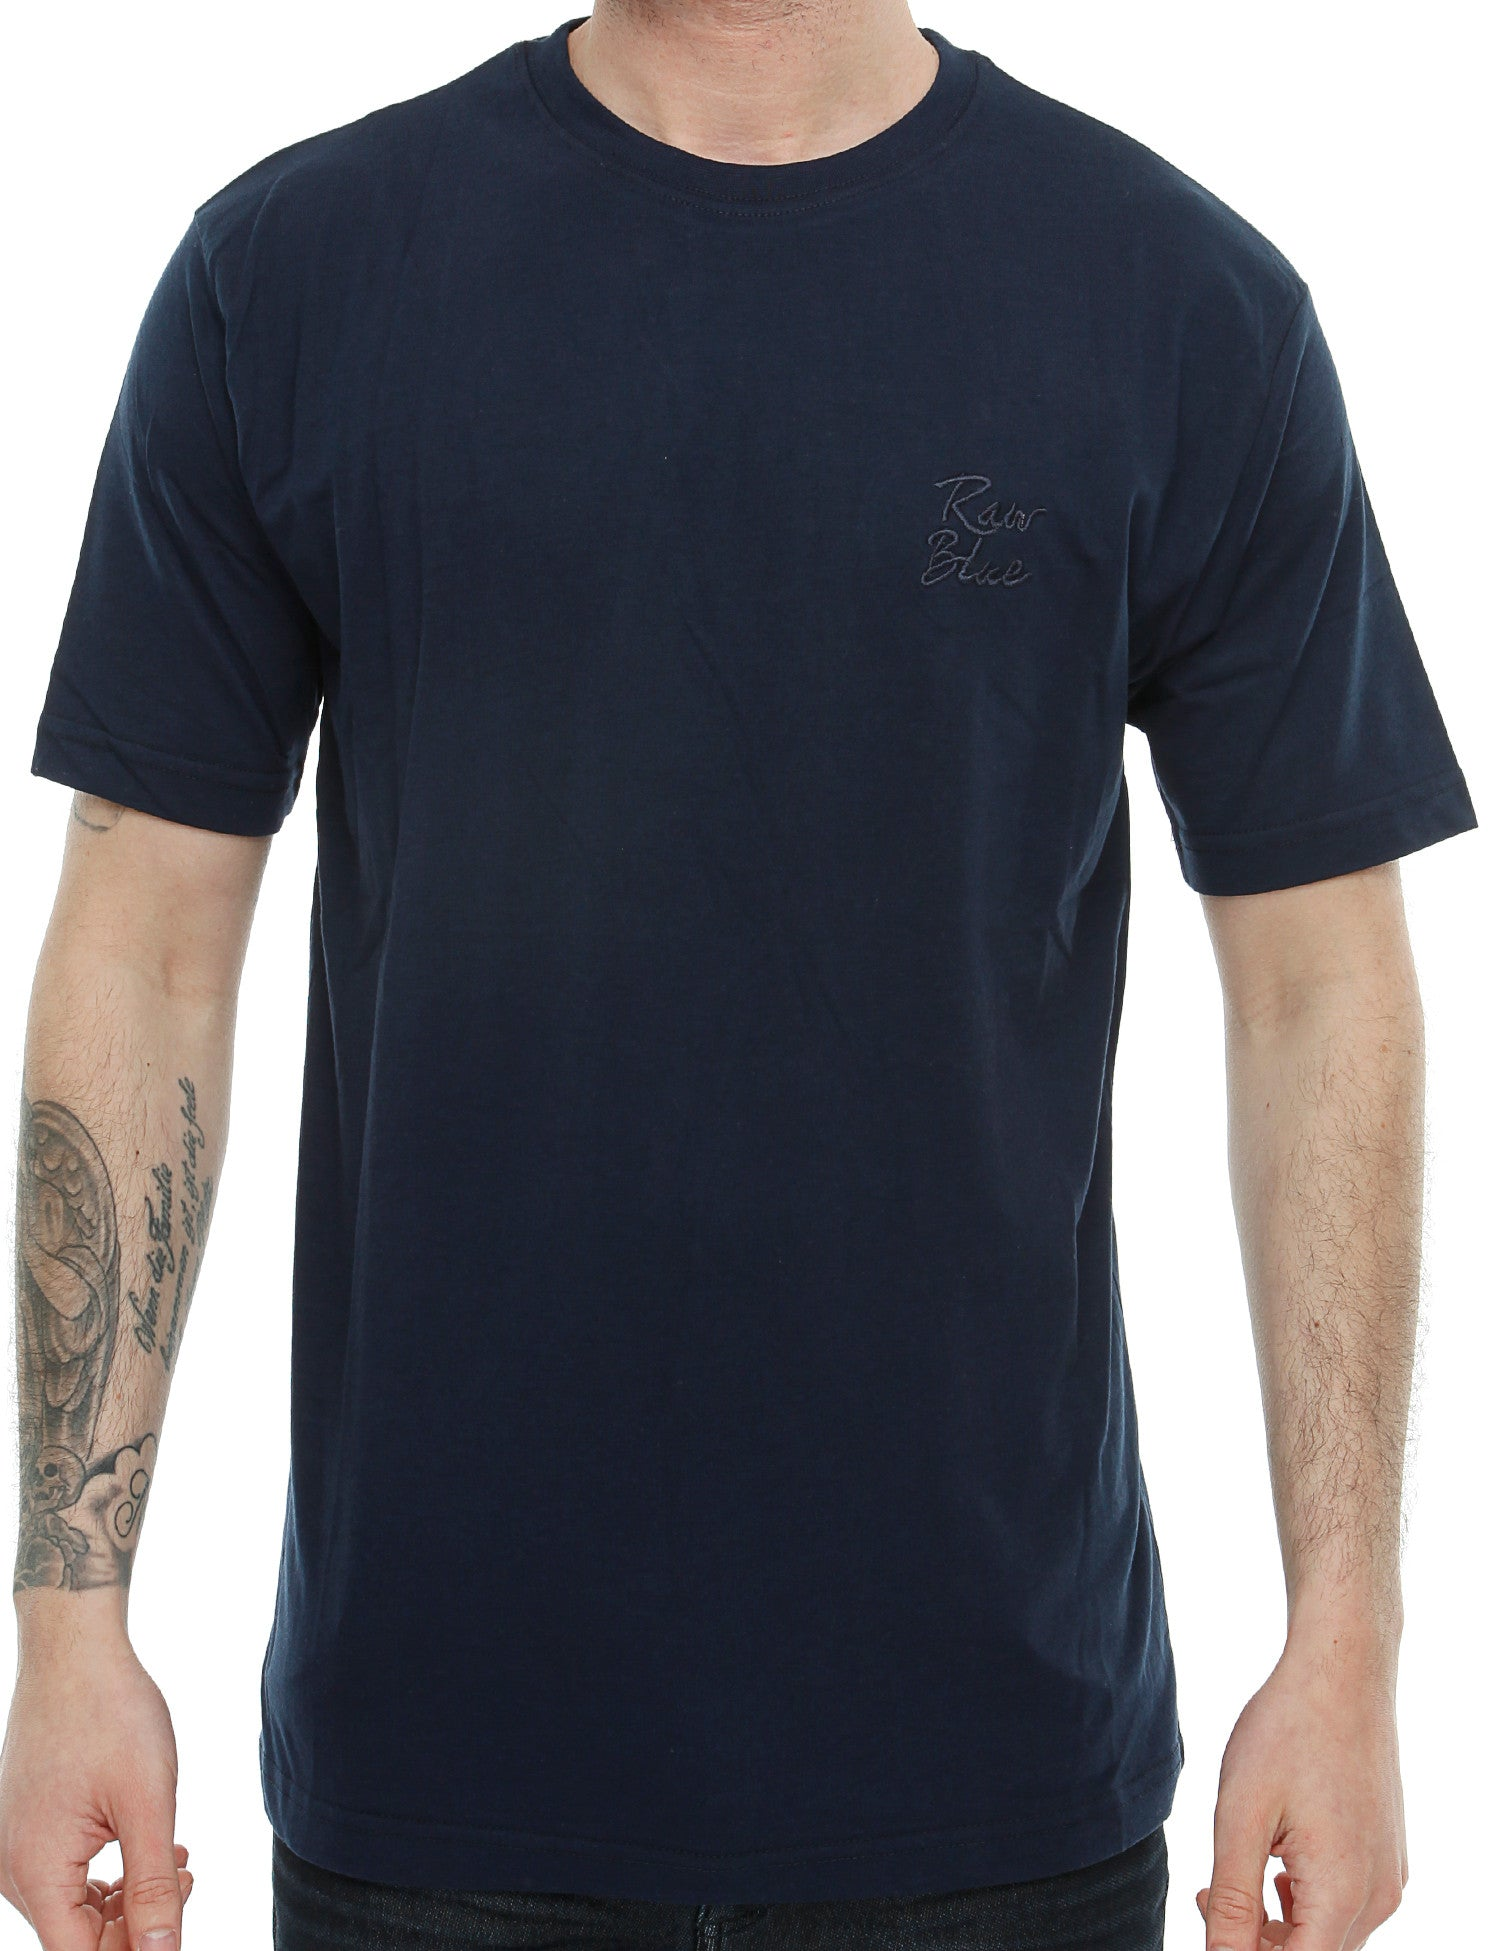 Raw Blue Basic Emb T-Shirt RB16-014 Navy